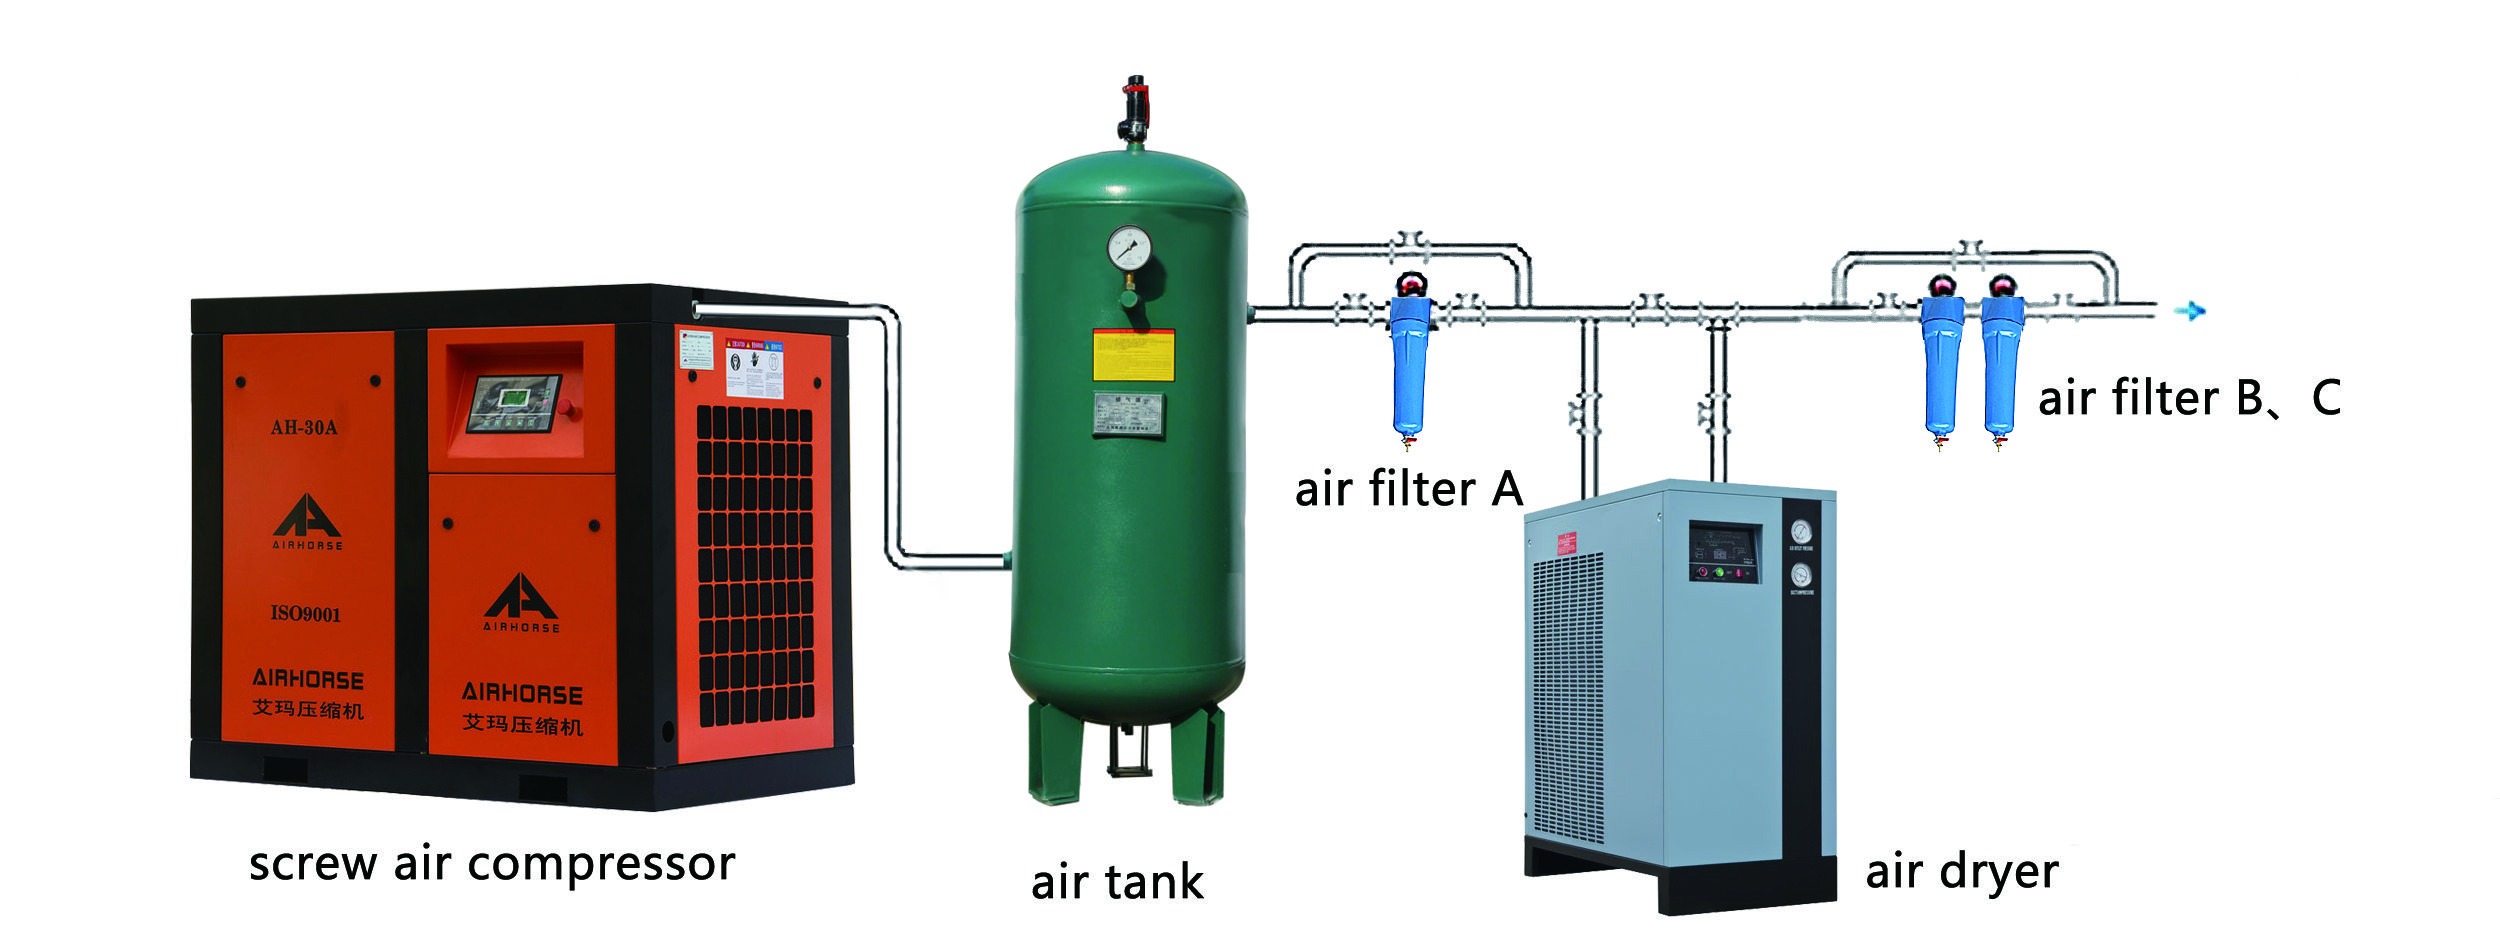 We are one of leading manufacturer of air compressor in